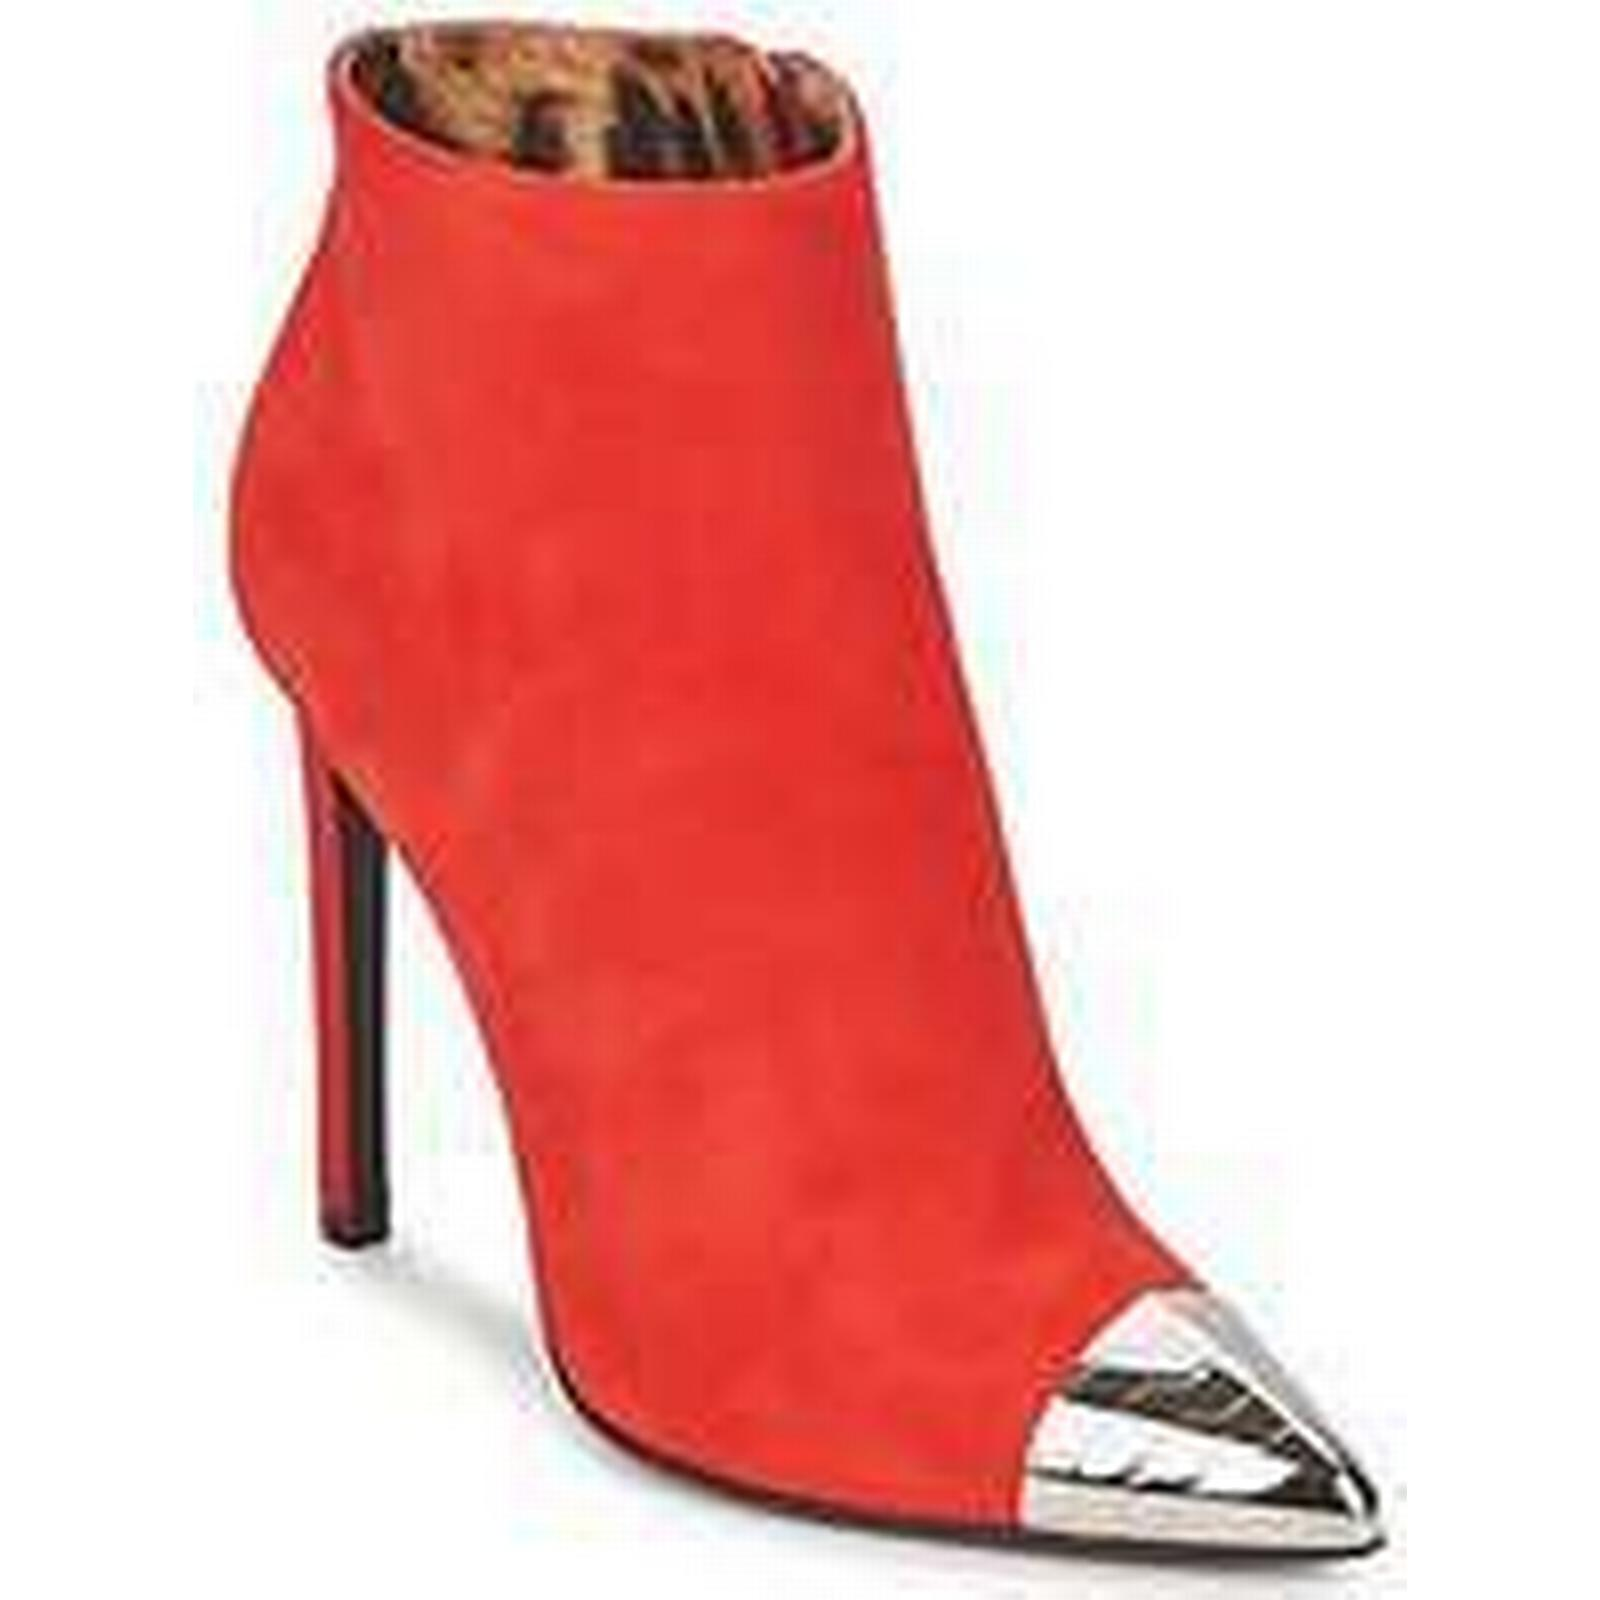 Spartoo.co.uk Roberto Cavalli WDS213 women's Red Low Ankle Boots in Red women's d2c805